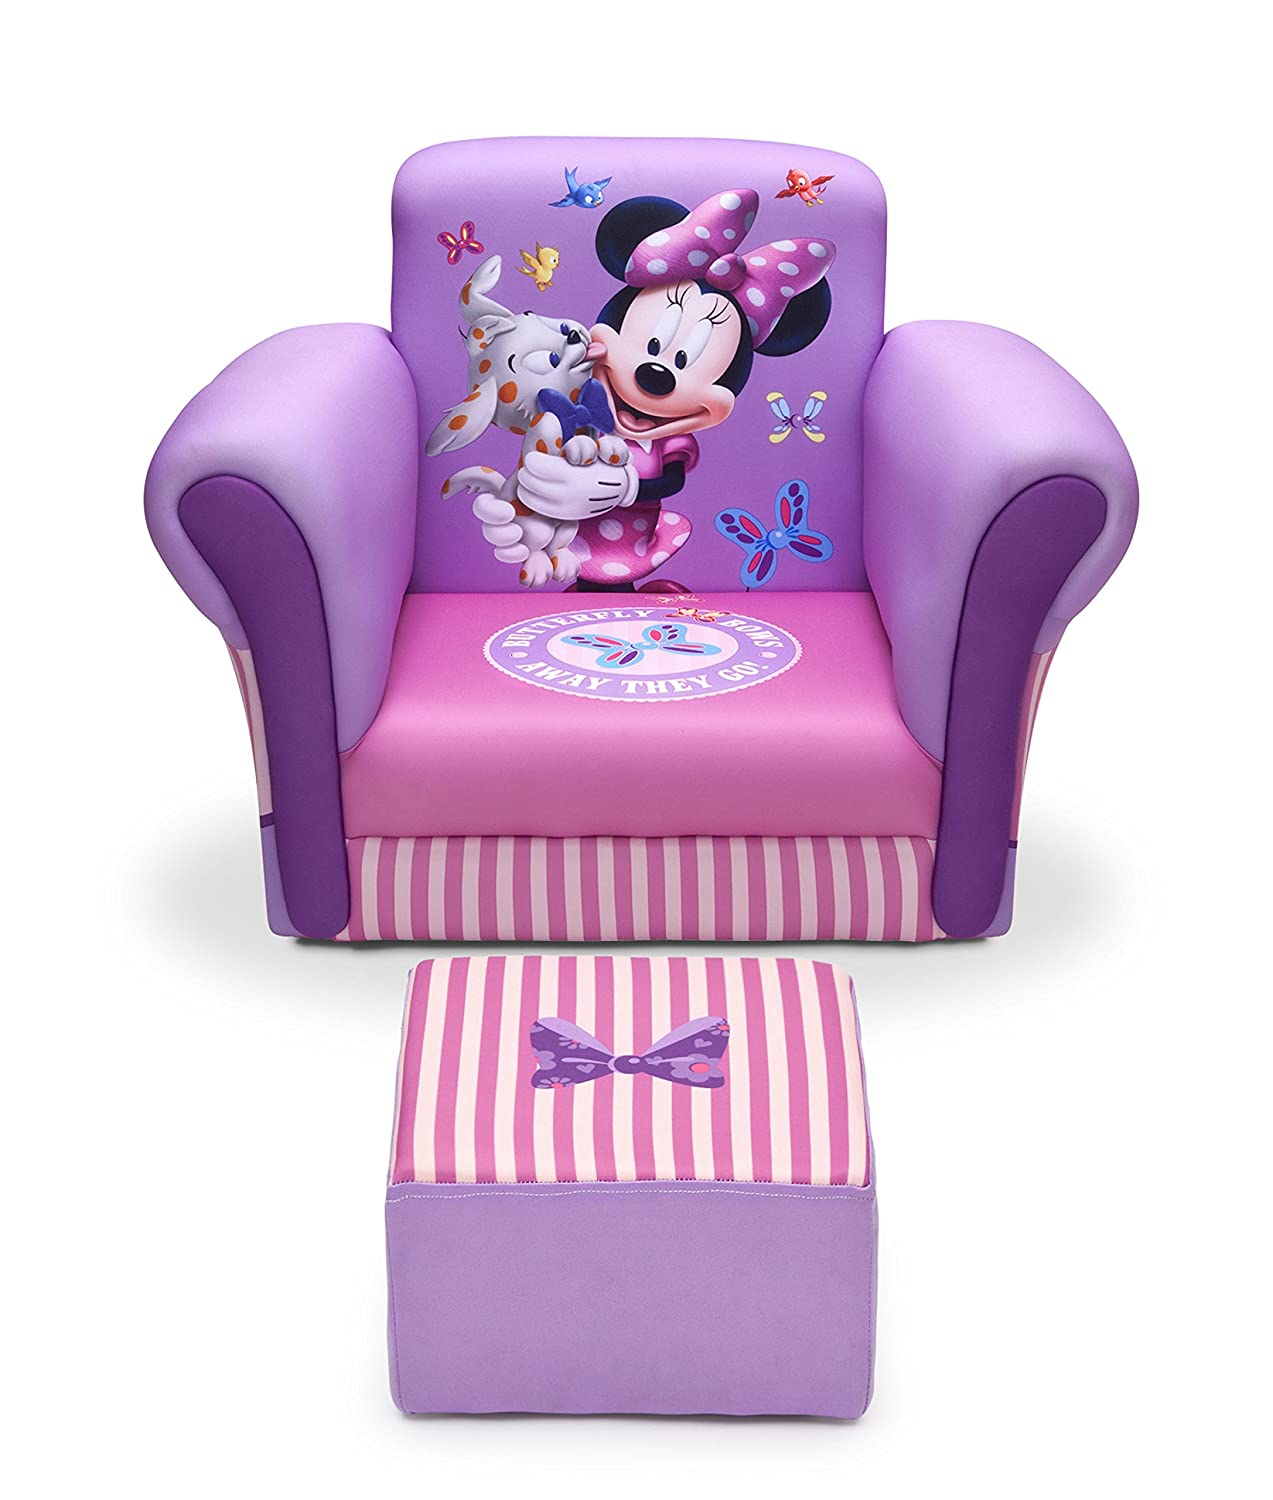 Amazon.com: Delta Children Upholstered Chair With Ottoman, Disney Minnie  Mouse: Baby